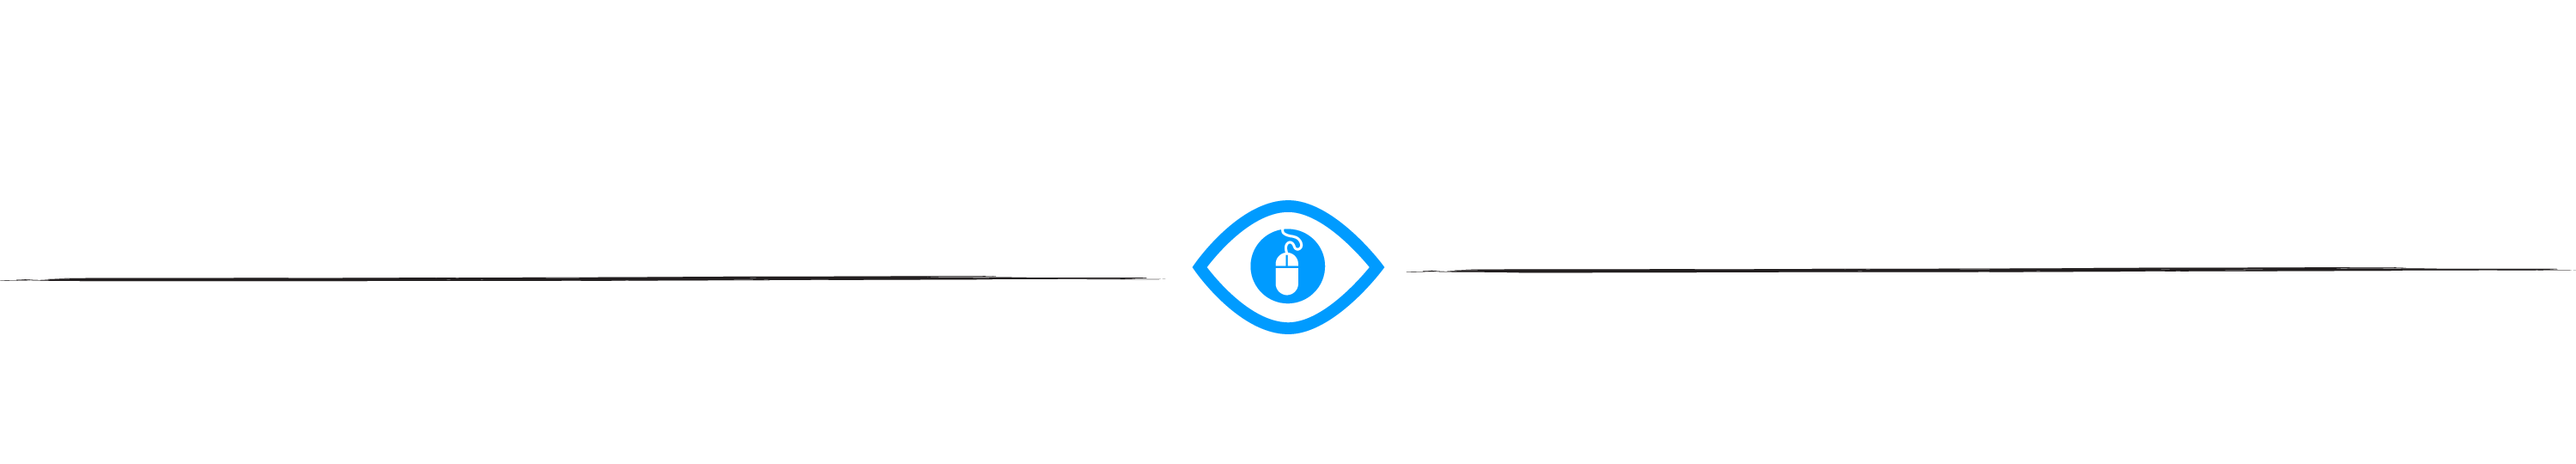 year-in-review-privacy-eye